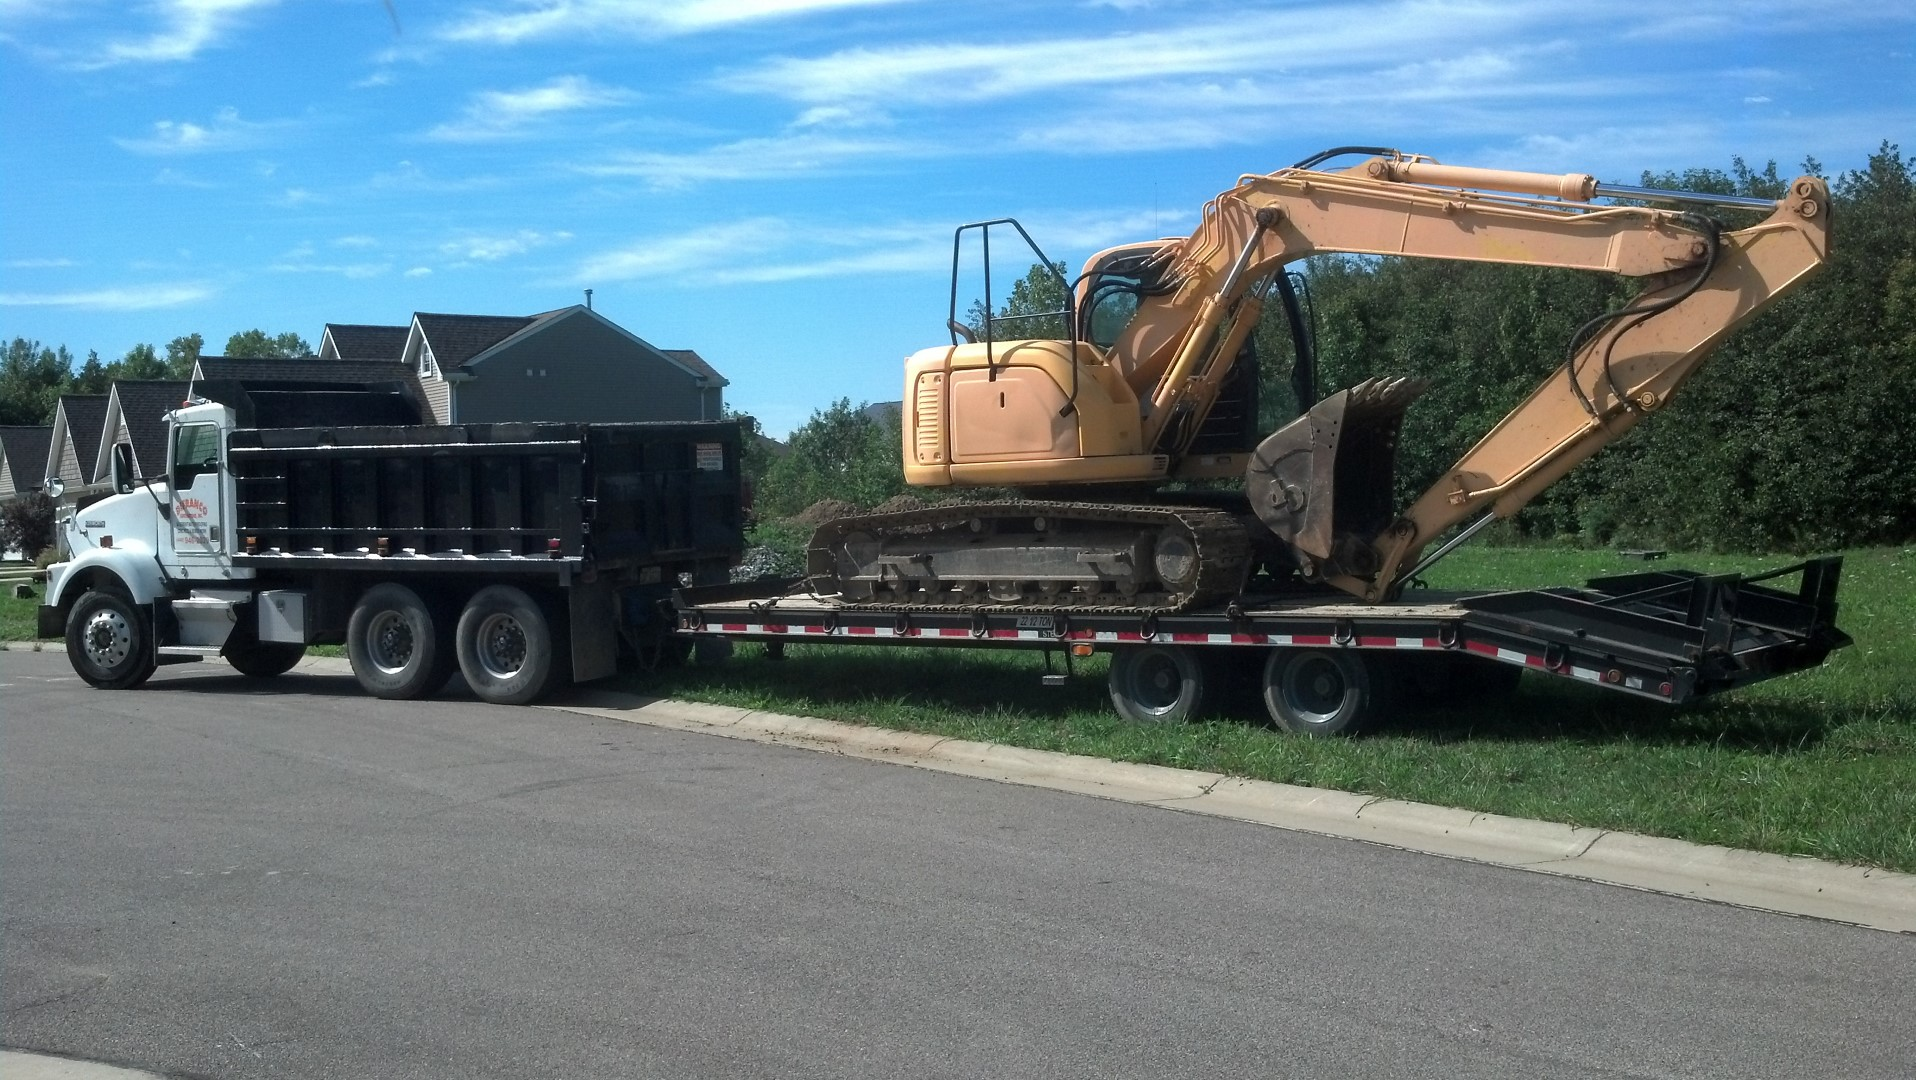 Hauling an excavator to a excavation site.